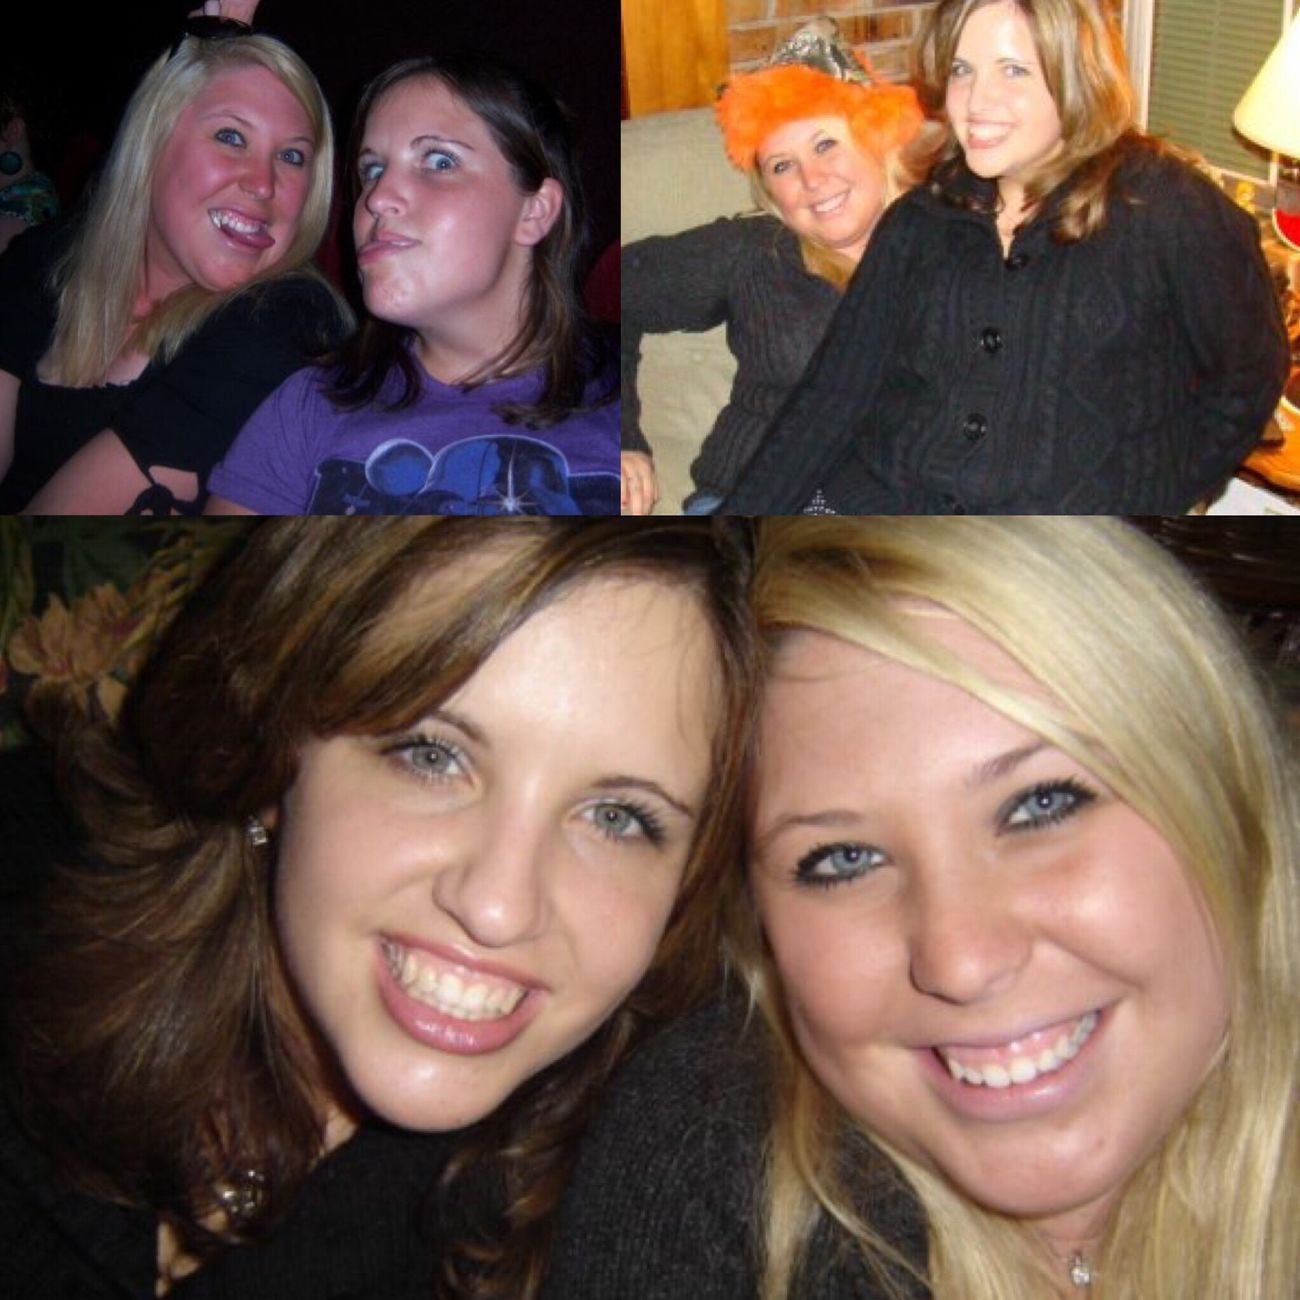 Yesterday a really good friend of mine was found dead in her home. Today I'm hurting because I miss her. This has been a rough start to my weekend. RIP Randi! You will be tremendously missed as well as your smile and contagious laugh. Thanks for the memories we have shared, they will be forever cherished! Until we meet again, I love you and miss you! EyeEm Friends Friendship Love Girl Bestfriend Smile Laugh RIP :( Missing You Hurting Sad Can't Believe It Until I See You Again Heaven Memories Funtimes Good Times Hello World Taking Photos Taking Pictures Photography Sorrow Gone But Never Forgotten Imsosad